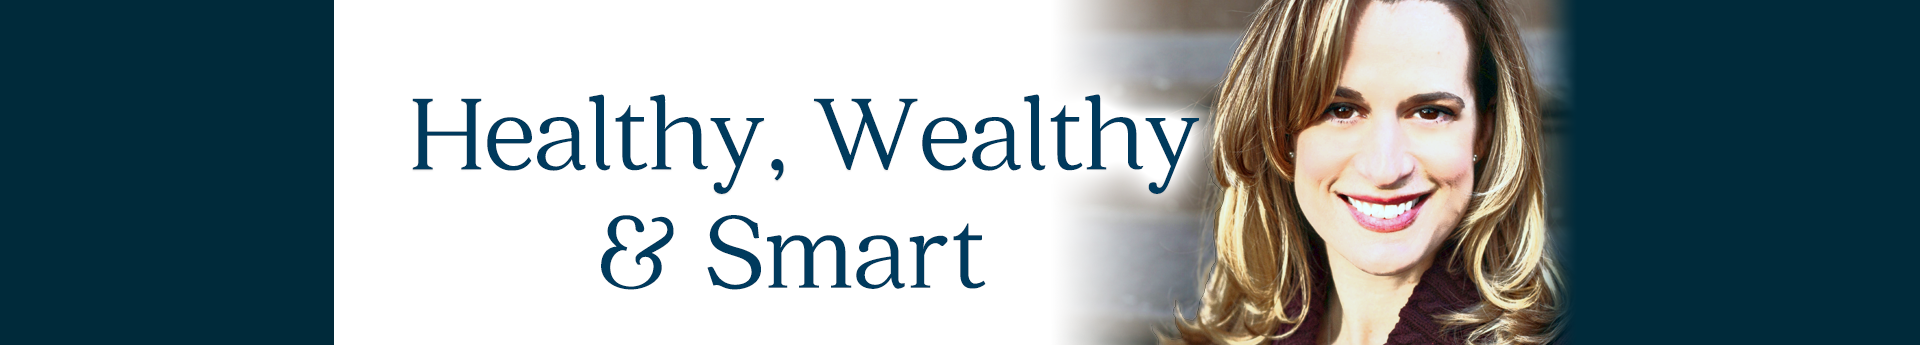 Healthy Wealthy Smart Podcast